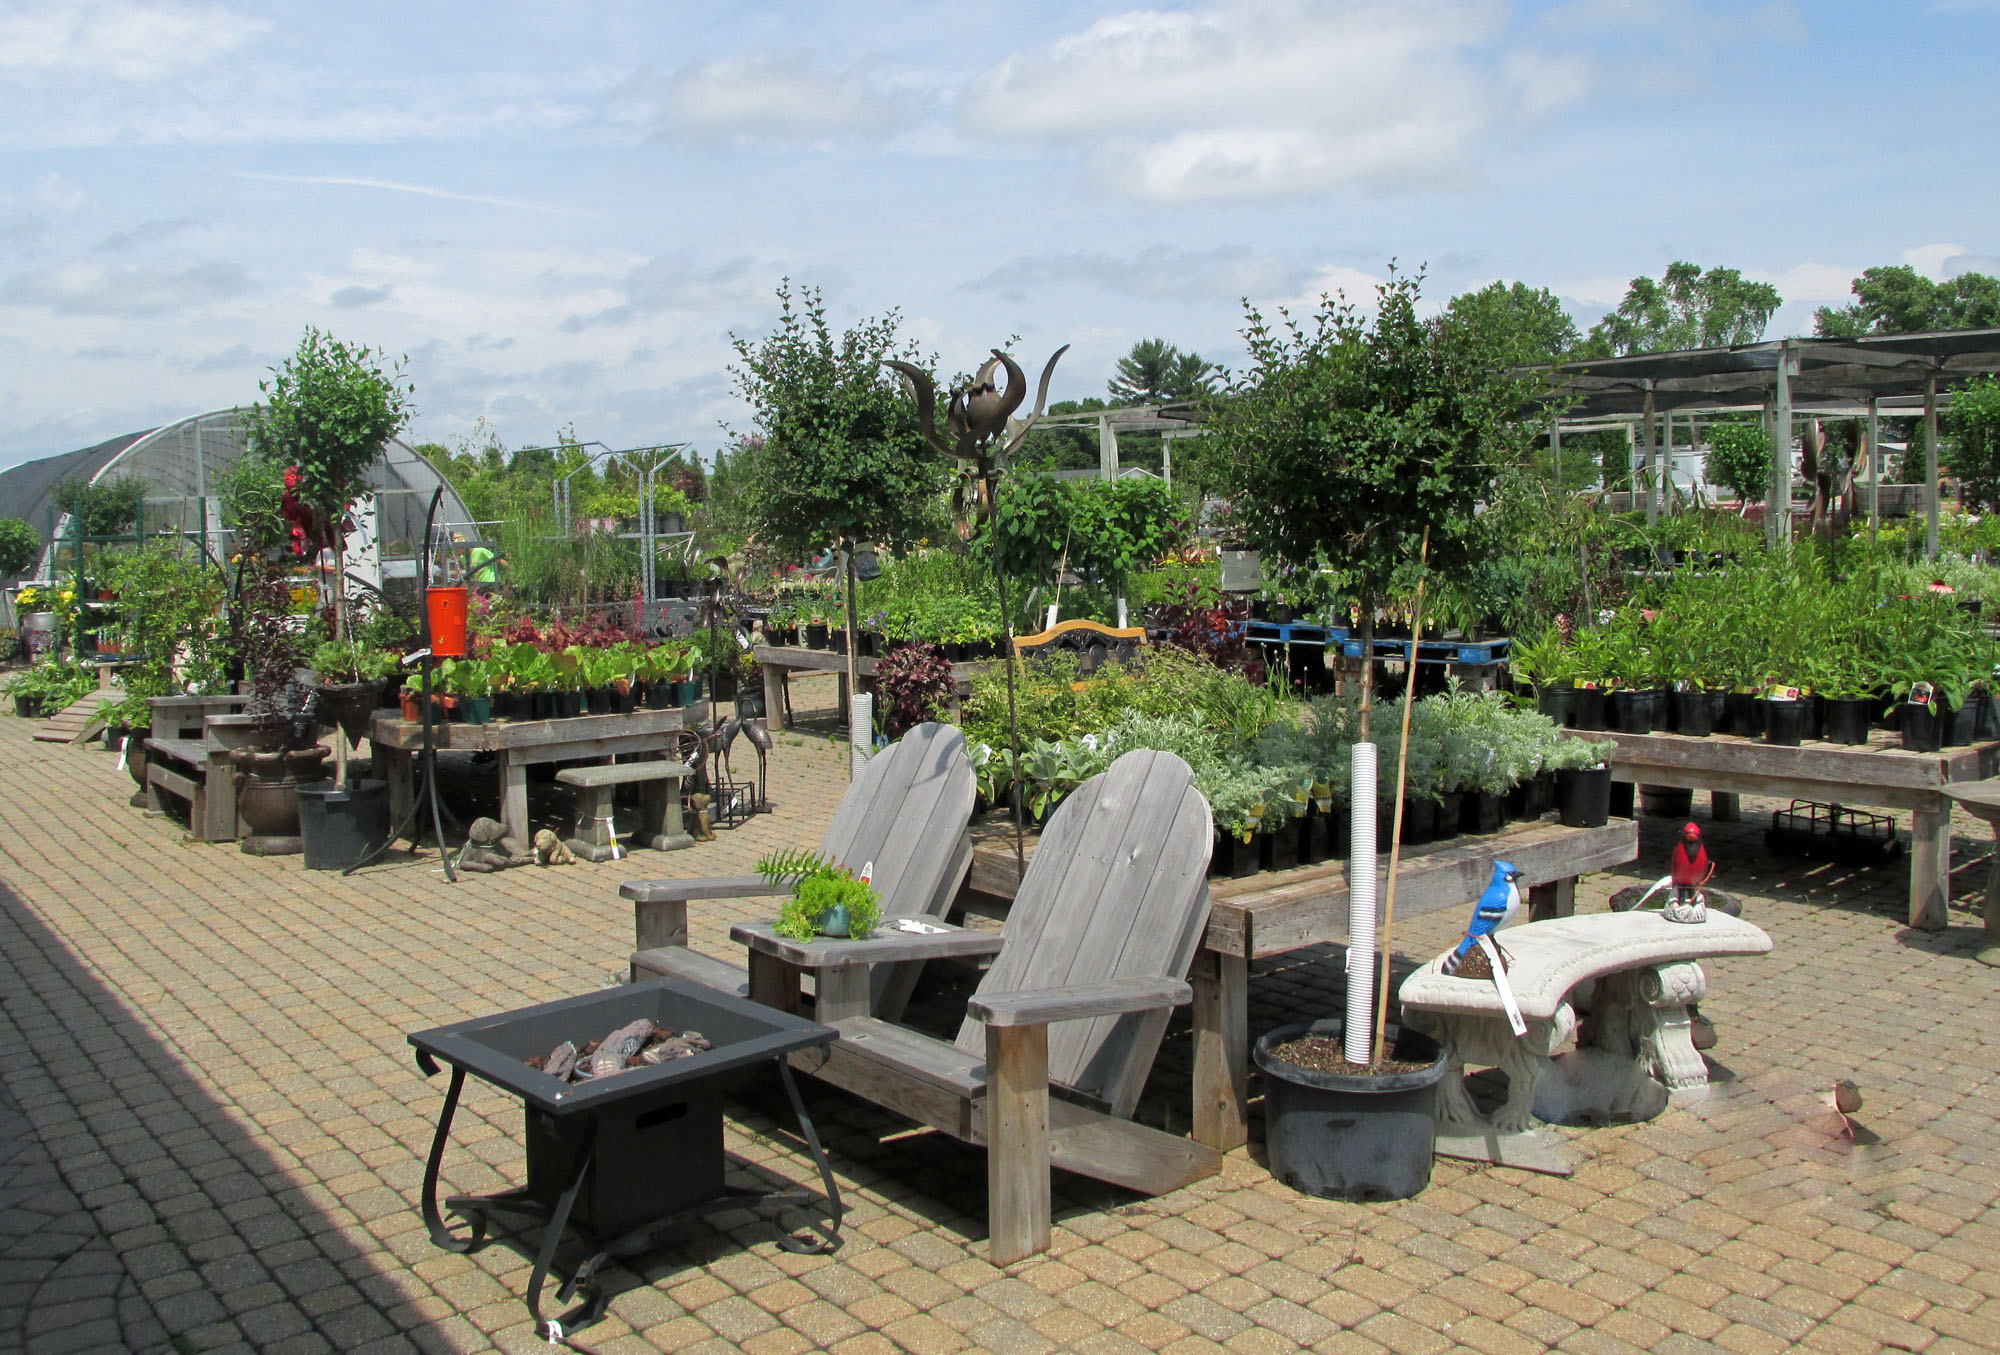 Landscaping Nursery And Garden Supplies Prestige landscaping llc lawn and garden center reedsburg wi prestige landscaping of reedsburg has all your landscape design and garden supplies workwithnaturefo